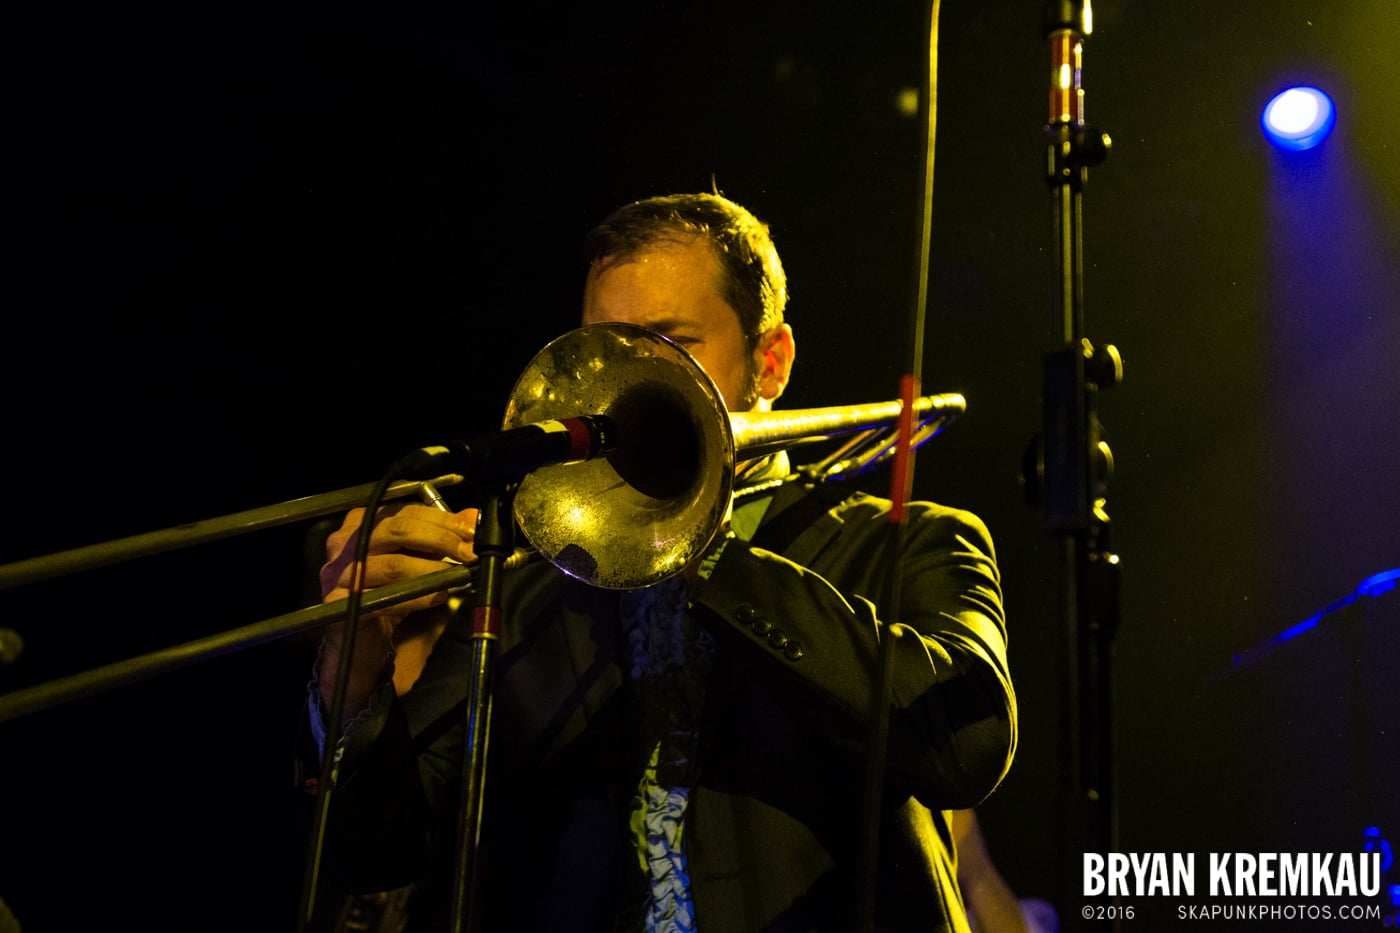 The Slackers @ Apple Stomp: Day 2, Irving Plaza, NYC - June 1st 2013 - Bryan Kremkau (30)